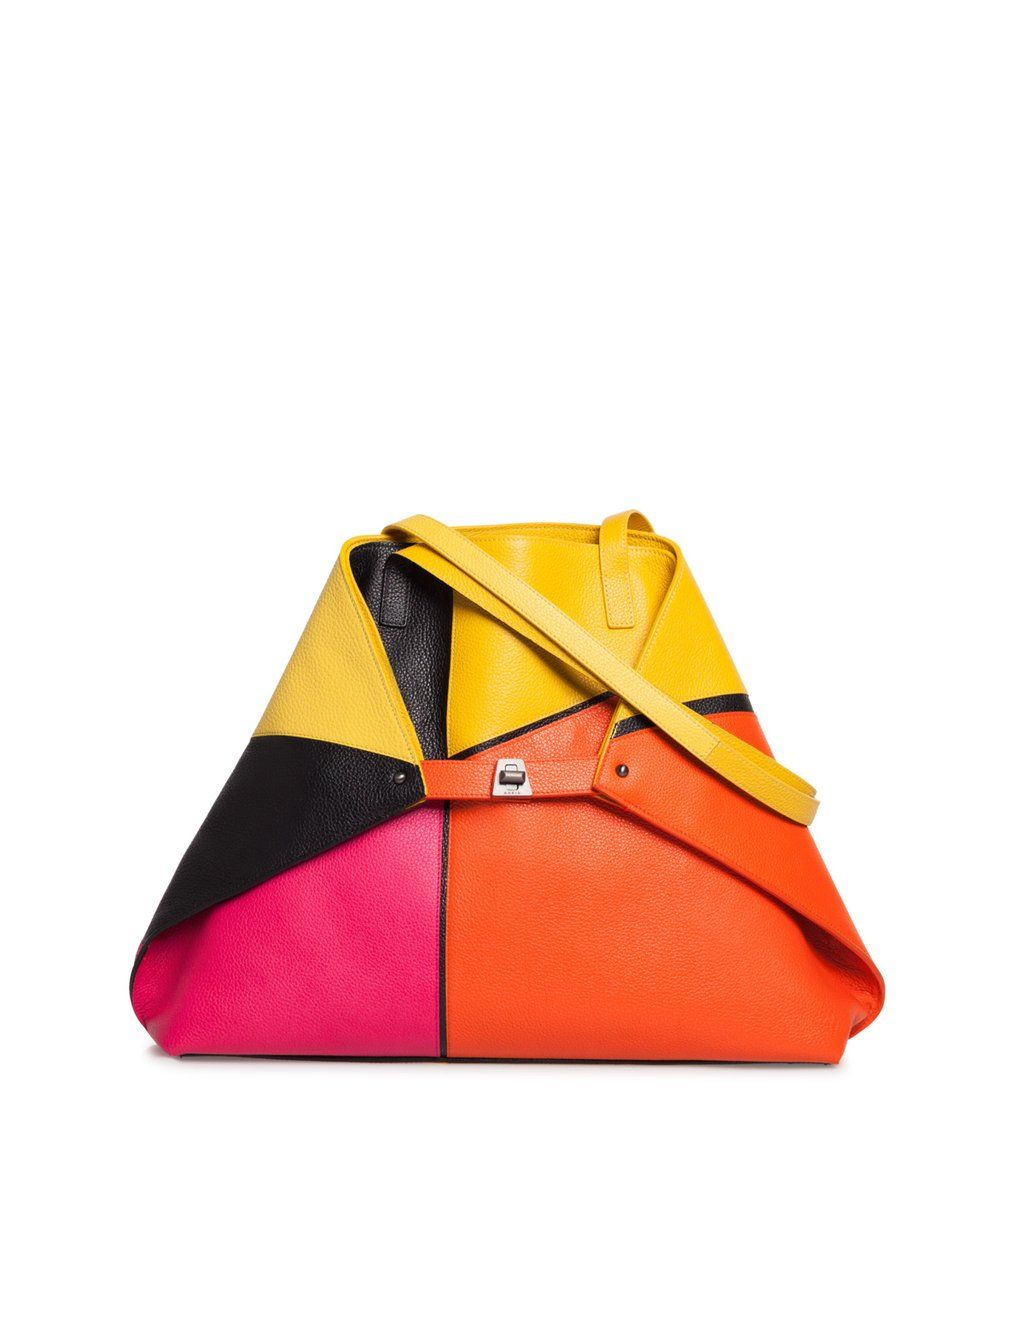 The statement bag brand that will be everywhere come summer